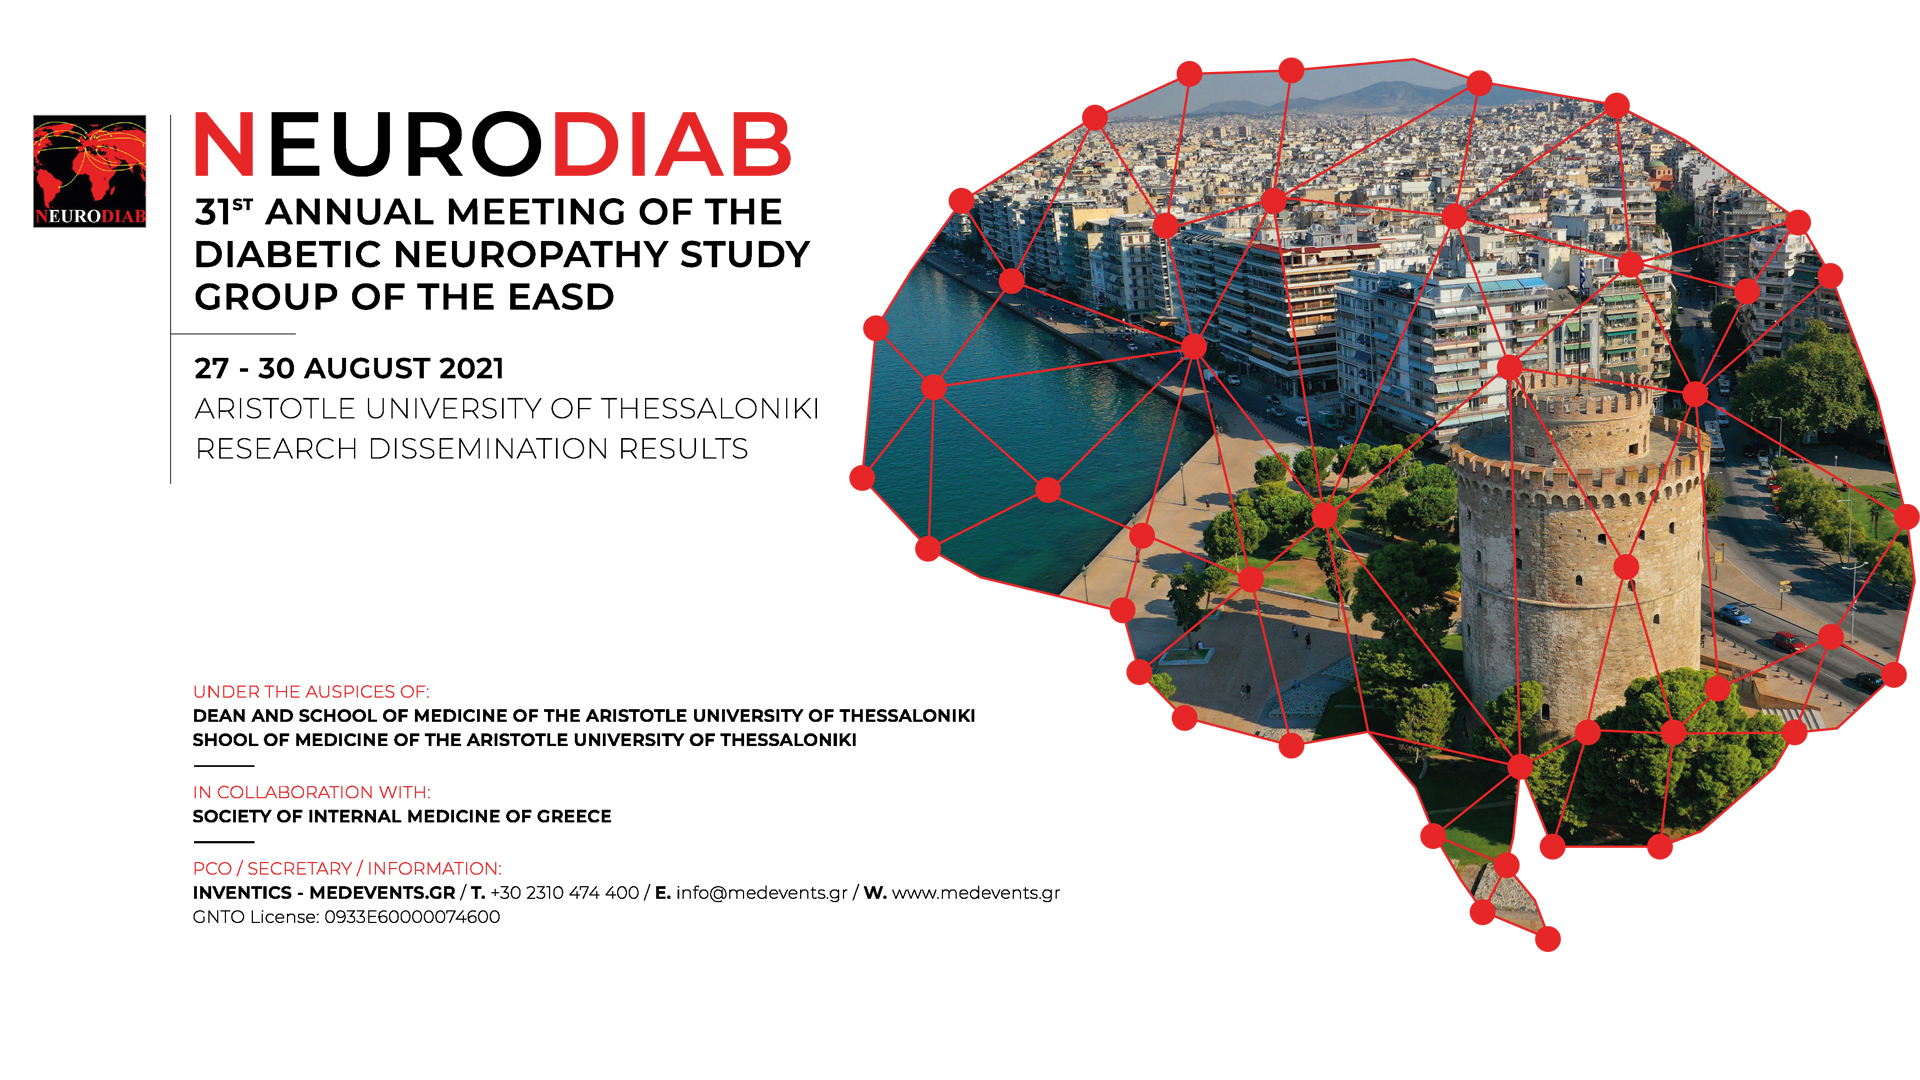 31st Annual Meeting of the Diabetic Neuropathy Study Group of the EASD